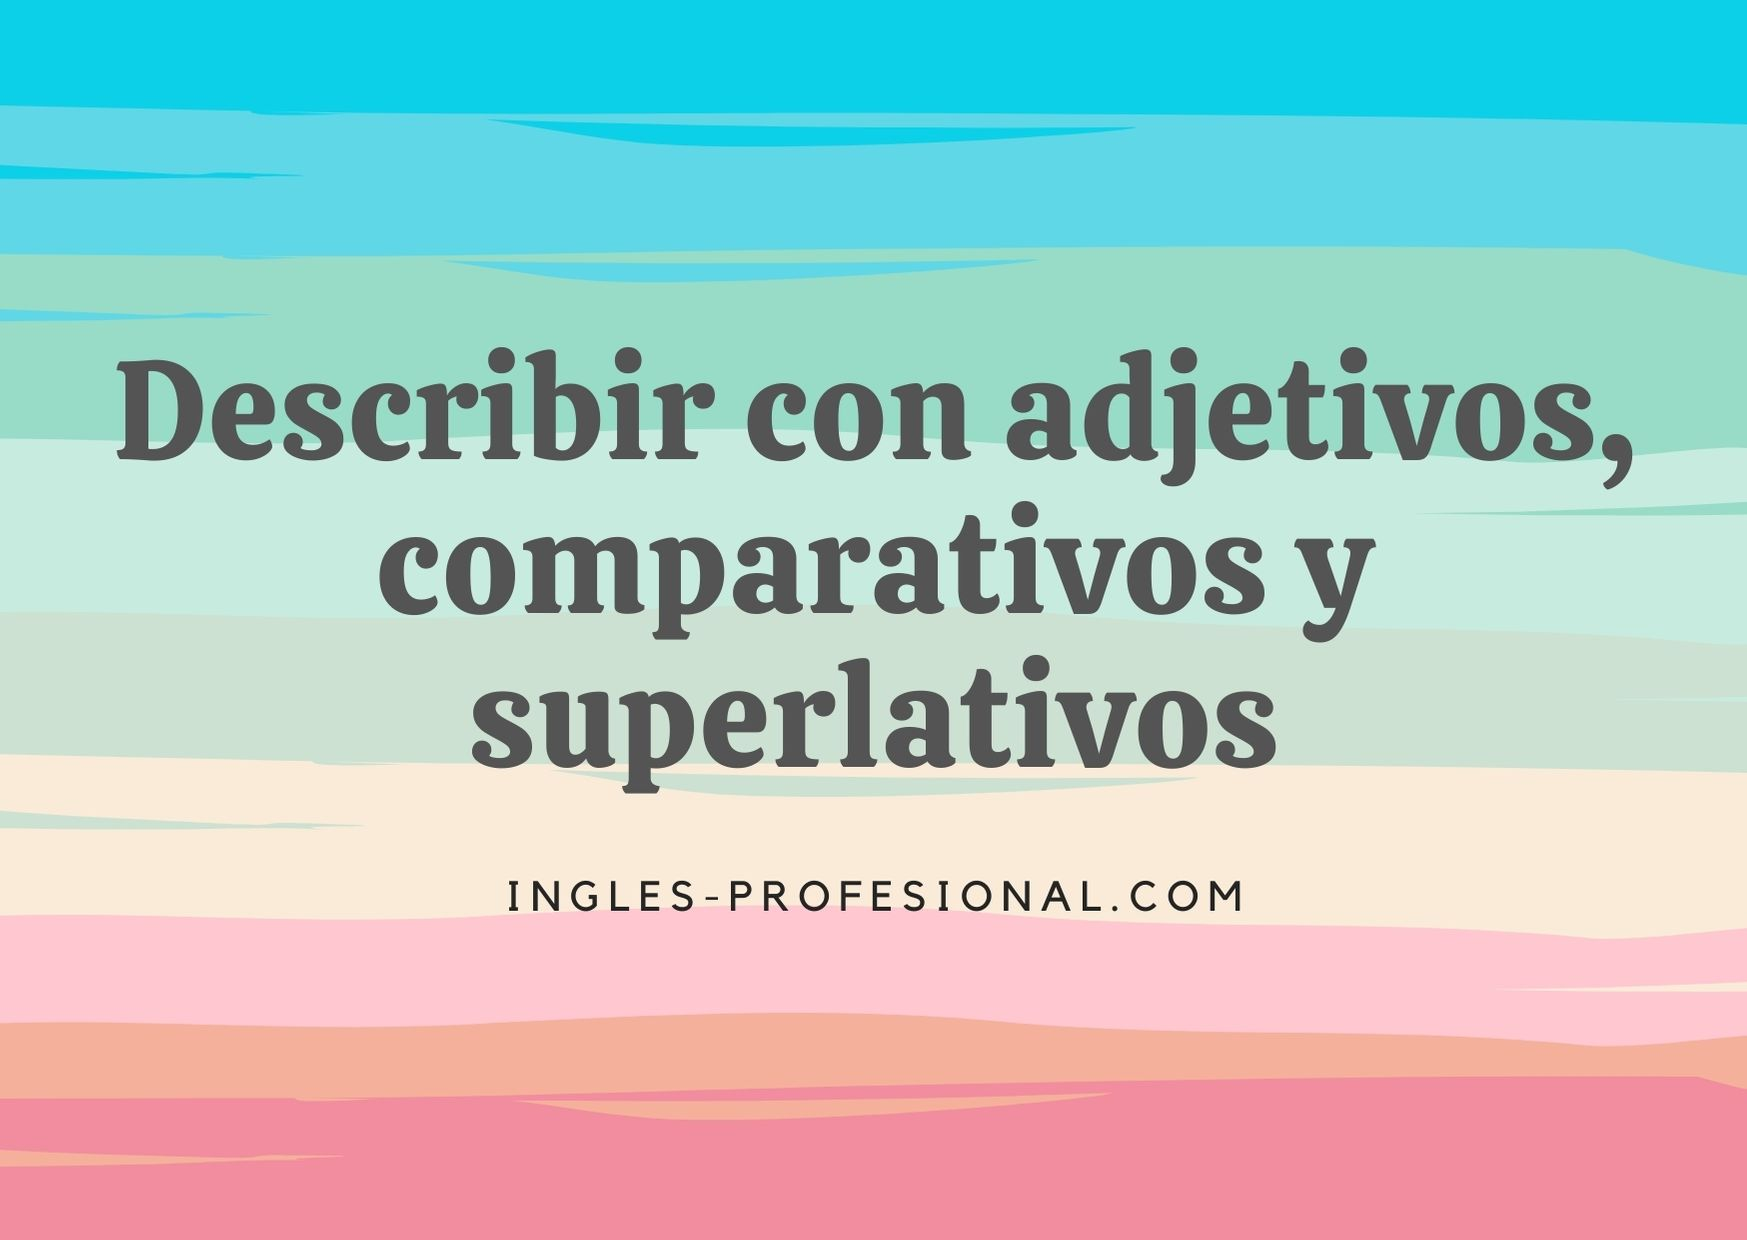 describir con adjetivos, comparativos y superlativos